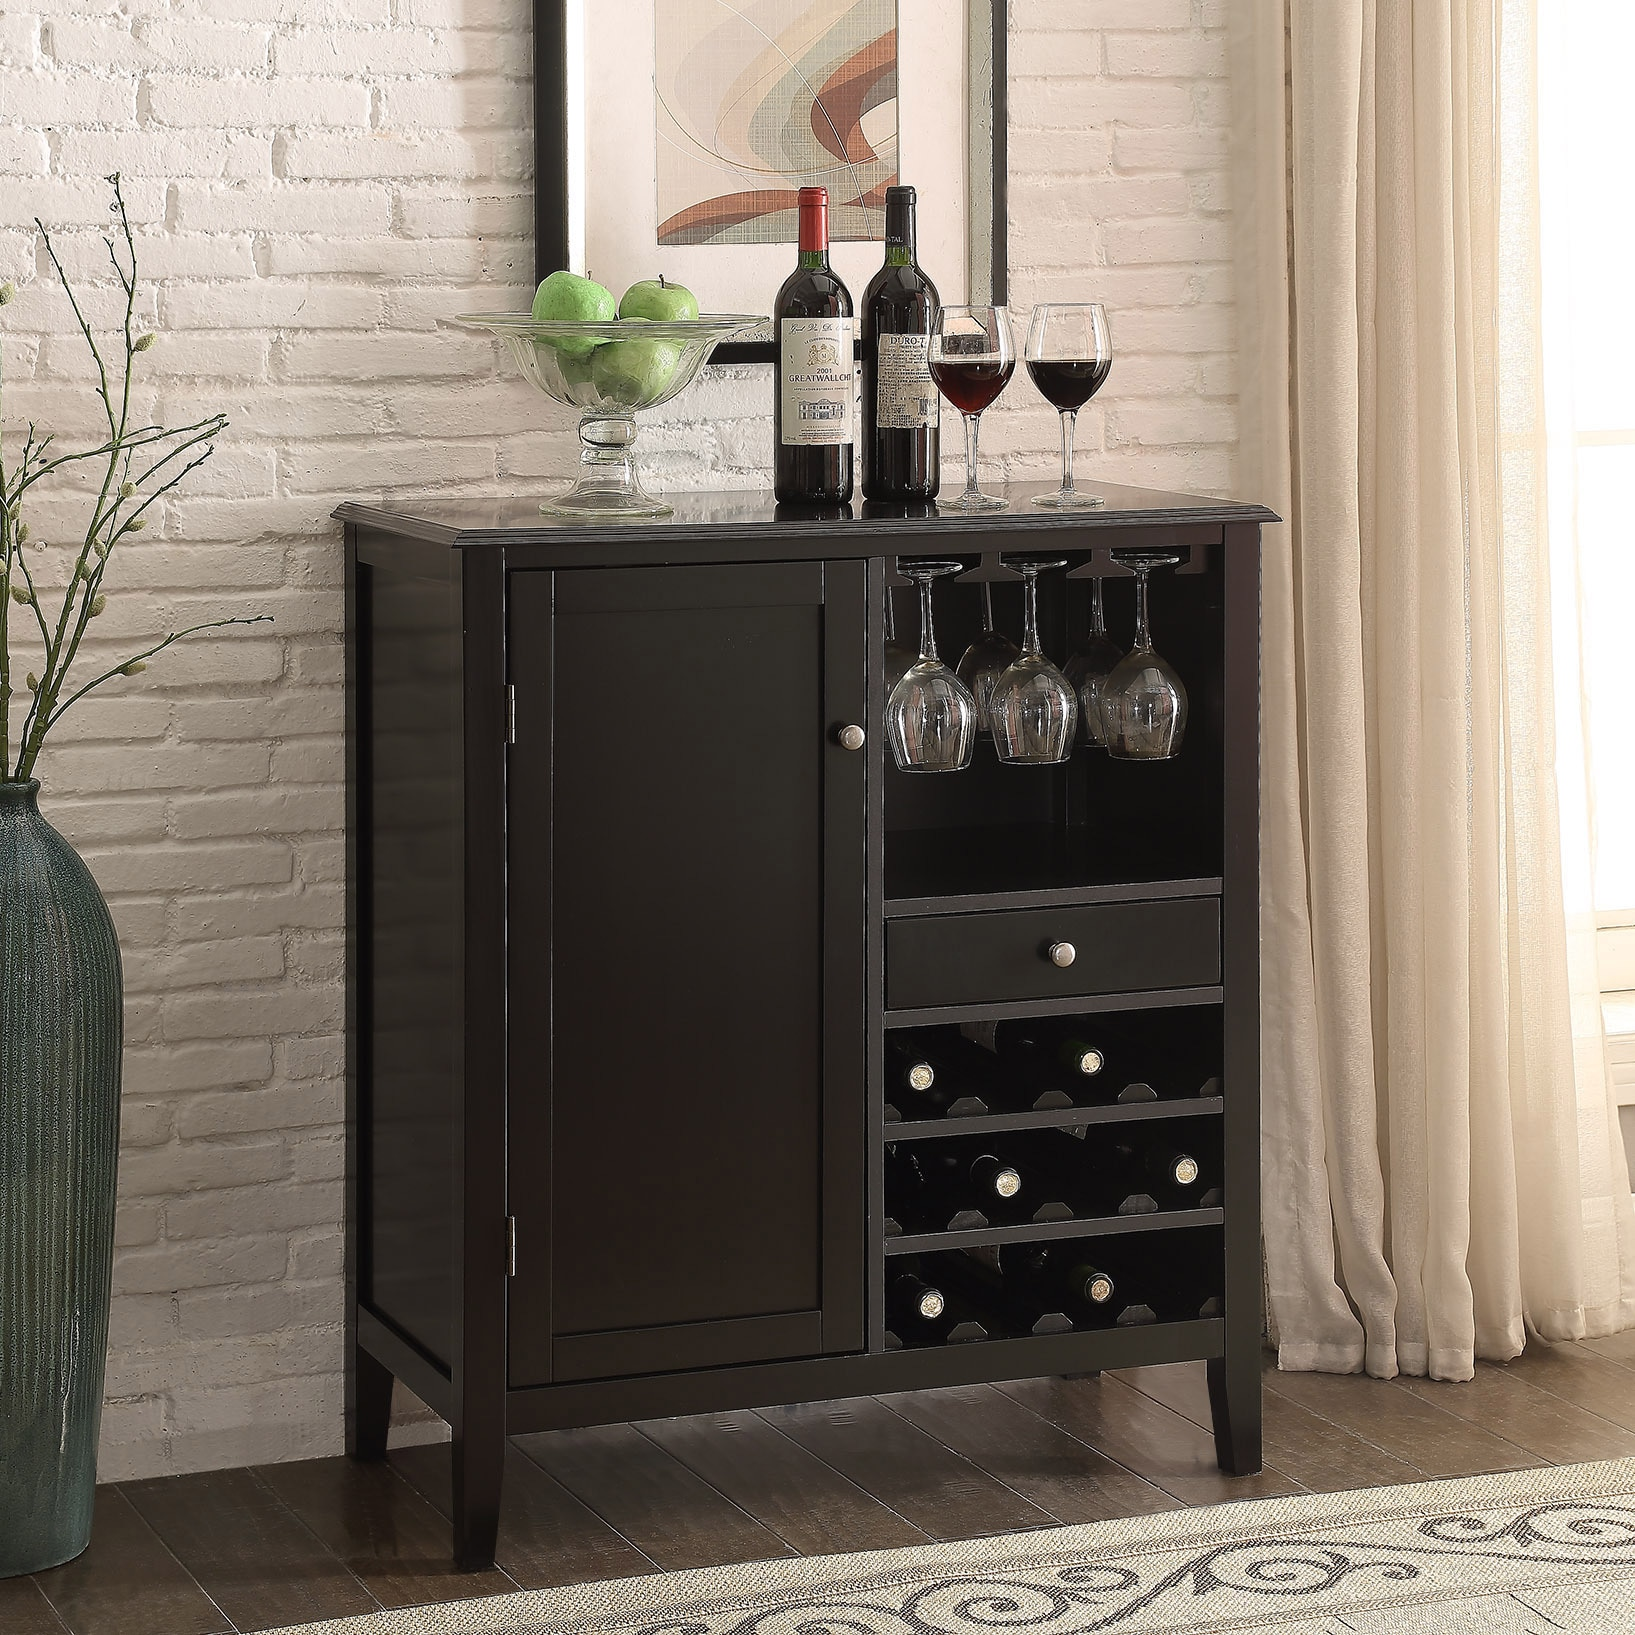 cabinet the everybody wine truth simple design storage talking revealed about is why